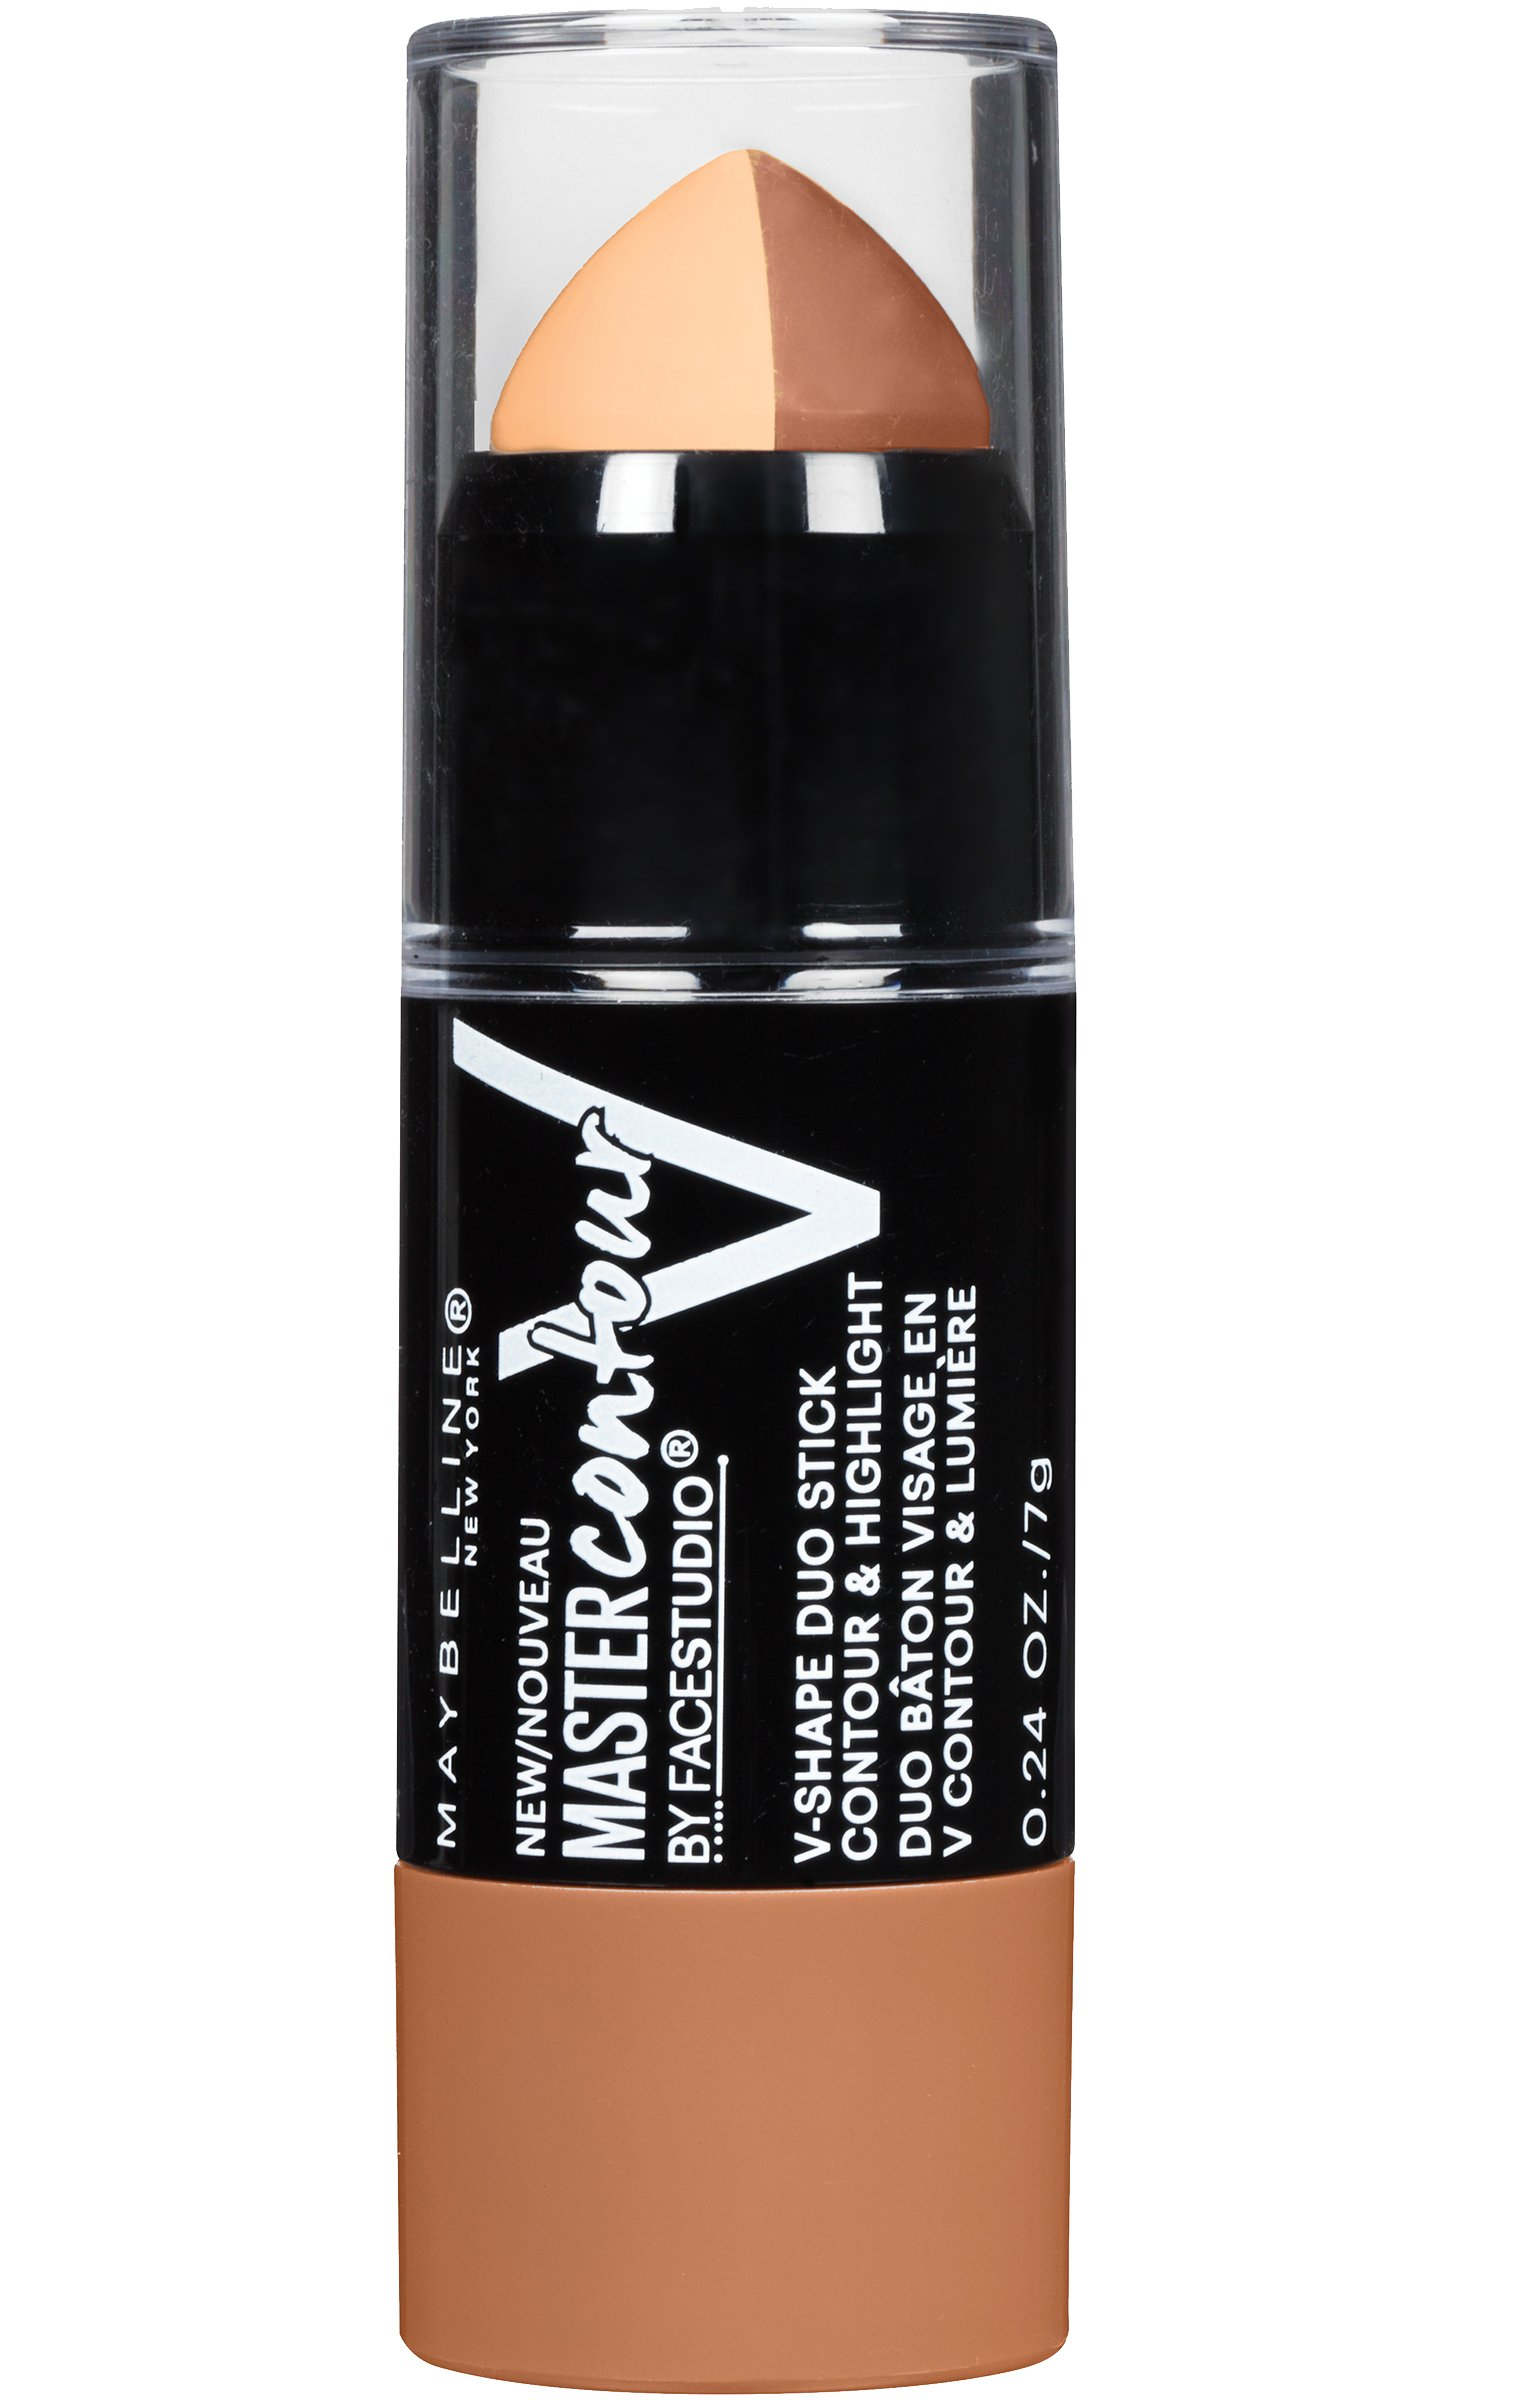 Maybelline Makeup Facestudio Master Contour V-Shape Duo Stick, Light Shade Contour Stick, 0.24 oz